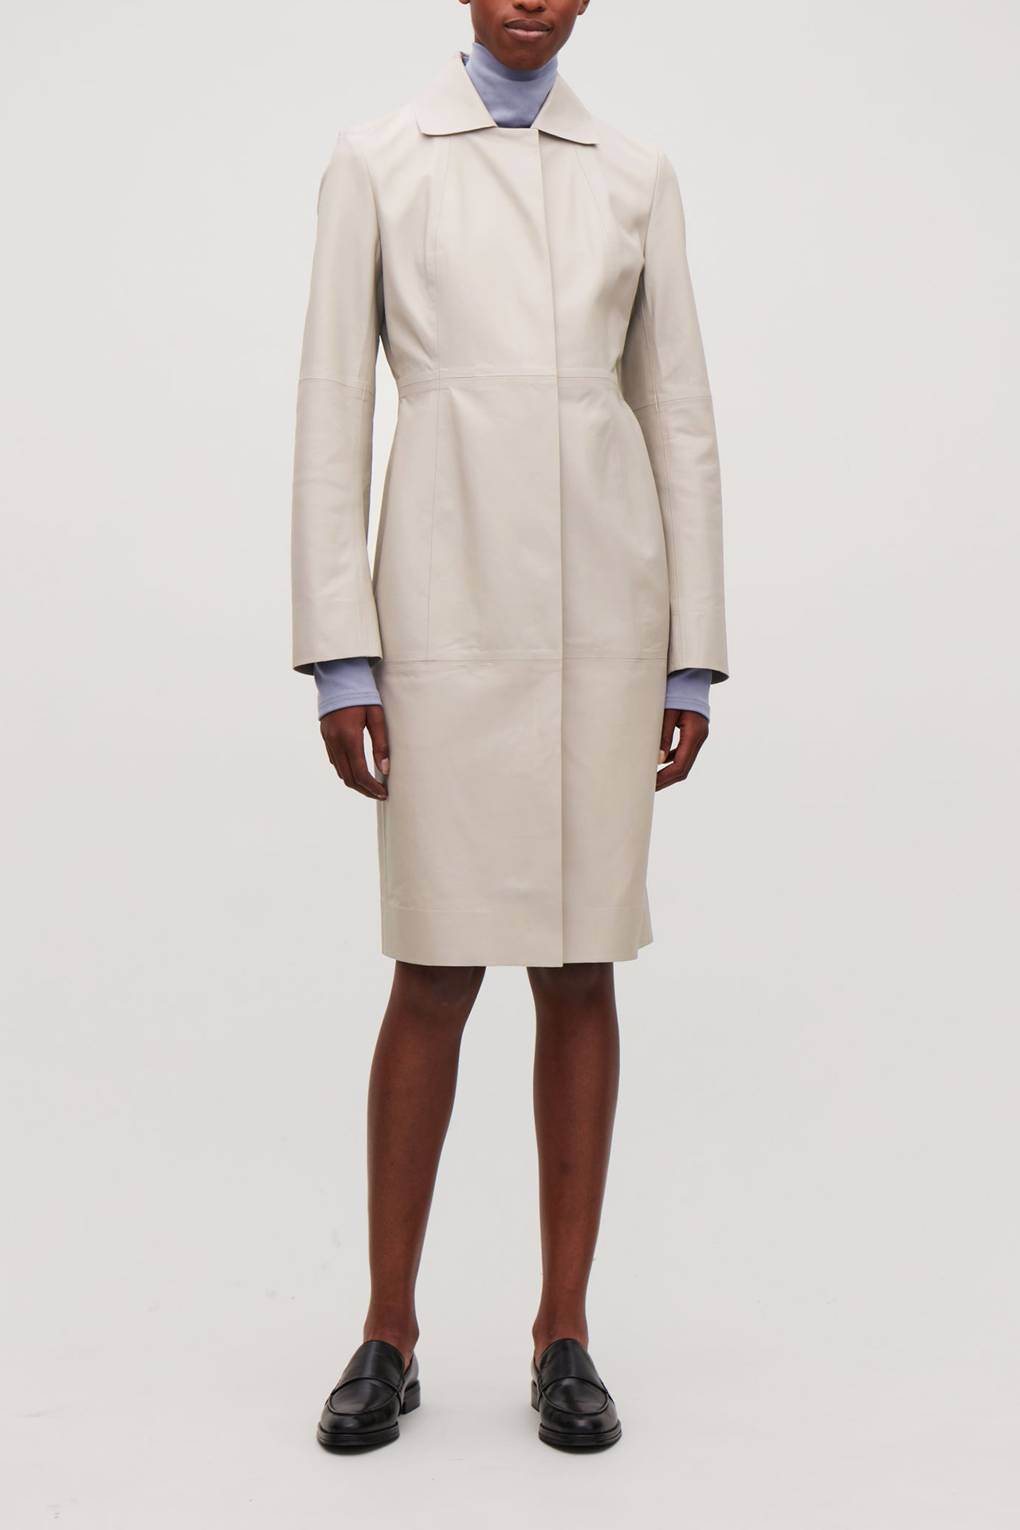 The New Season Coat Collection We've Fallen For forecast